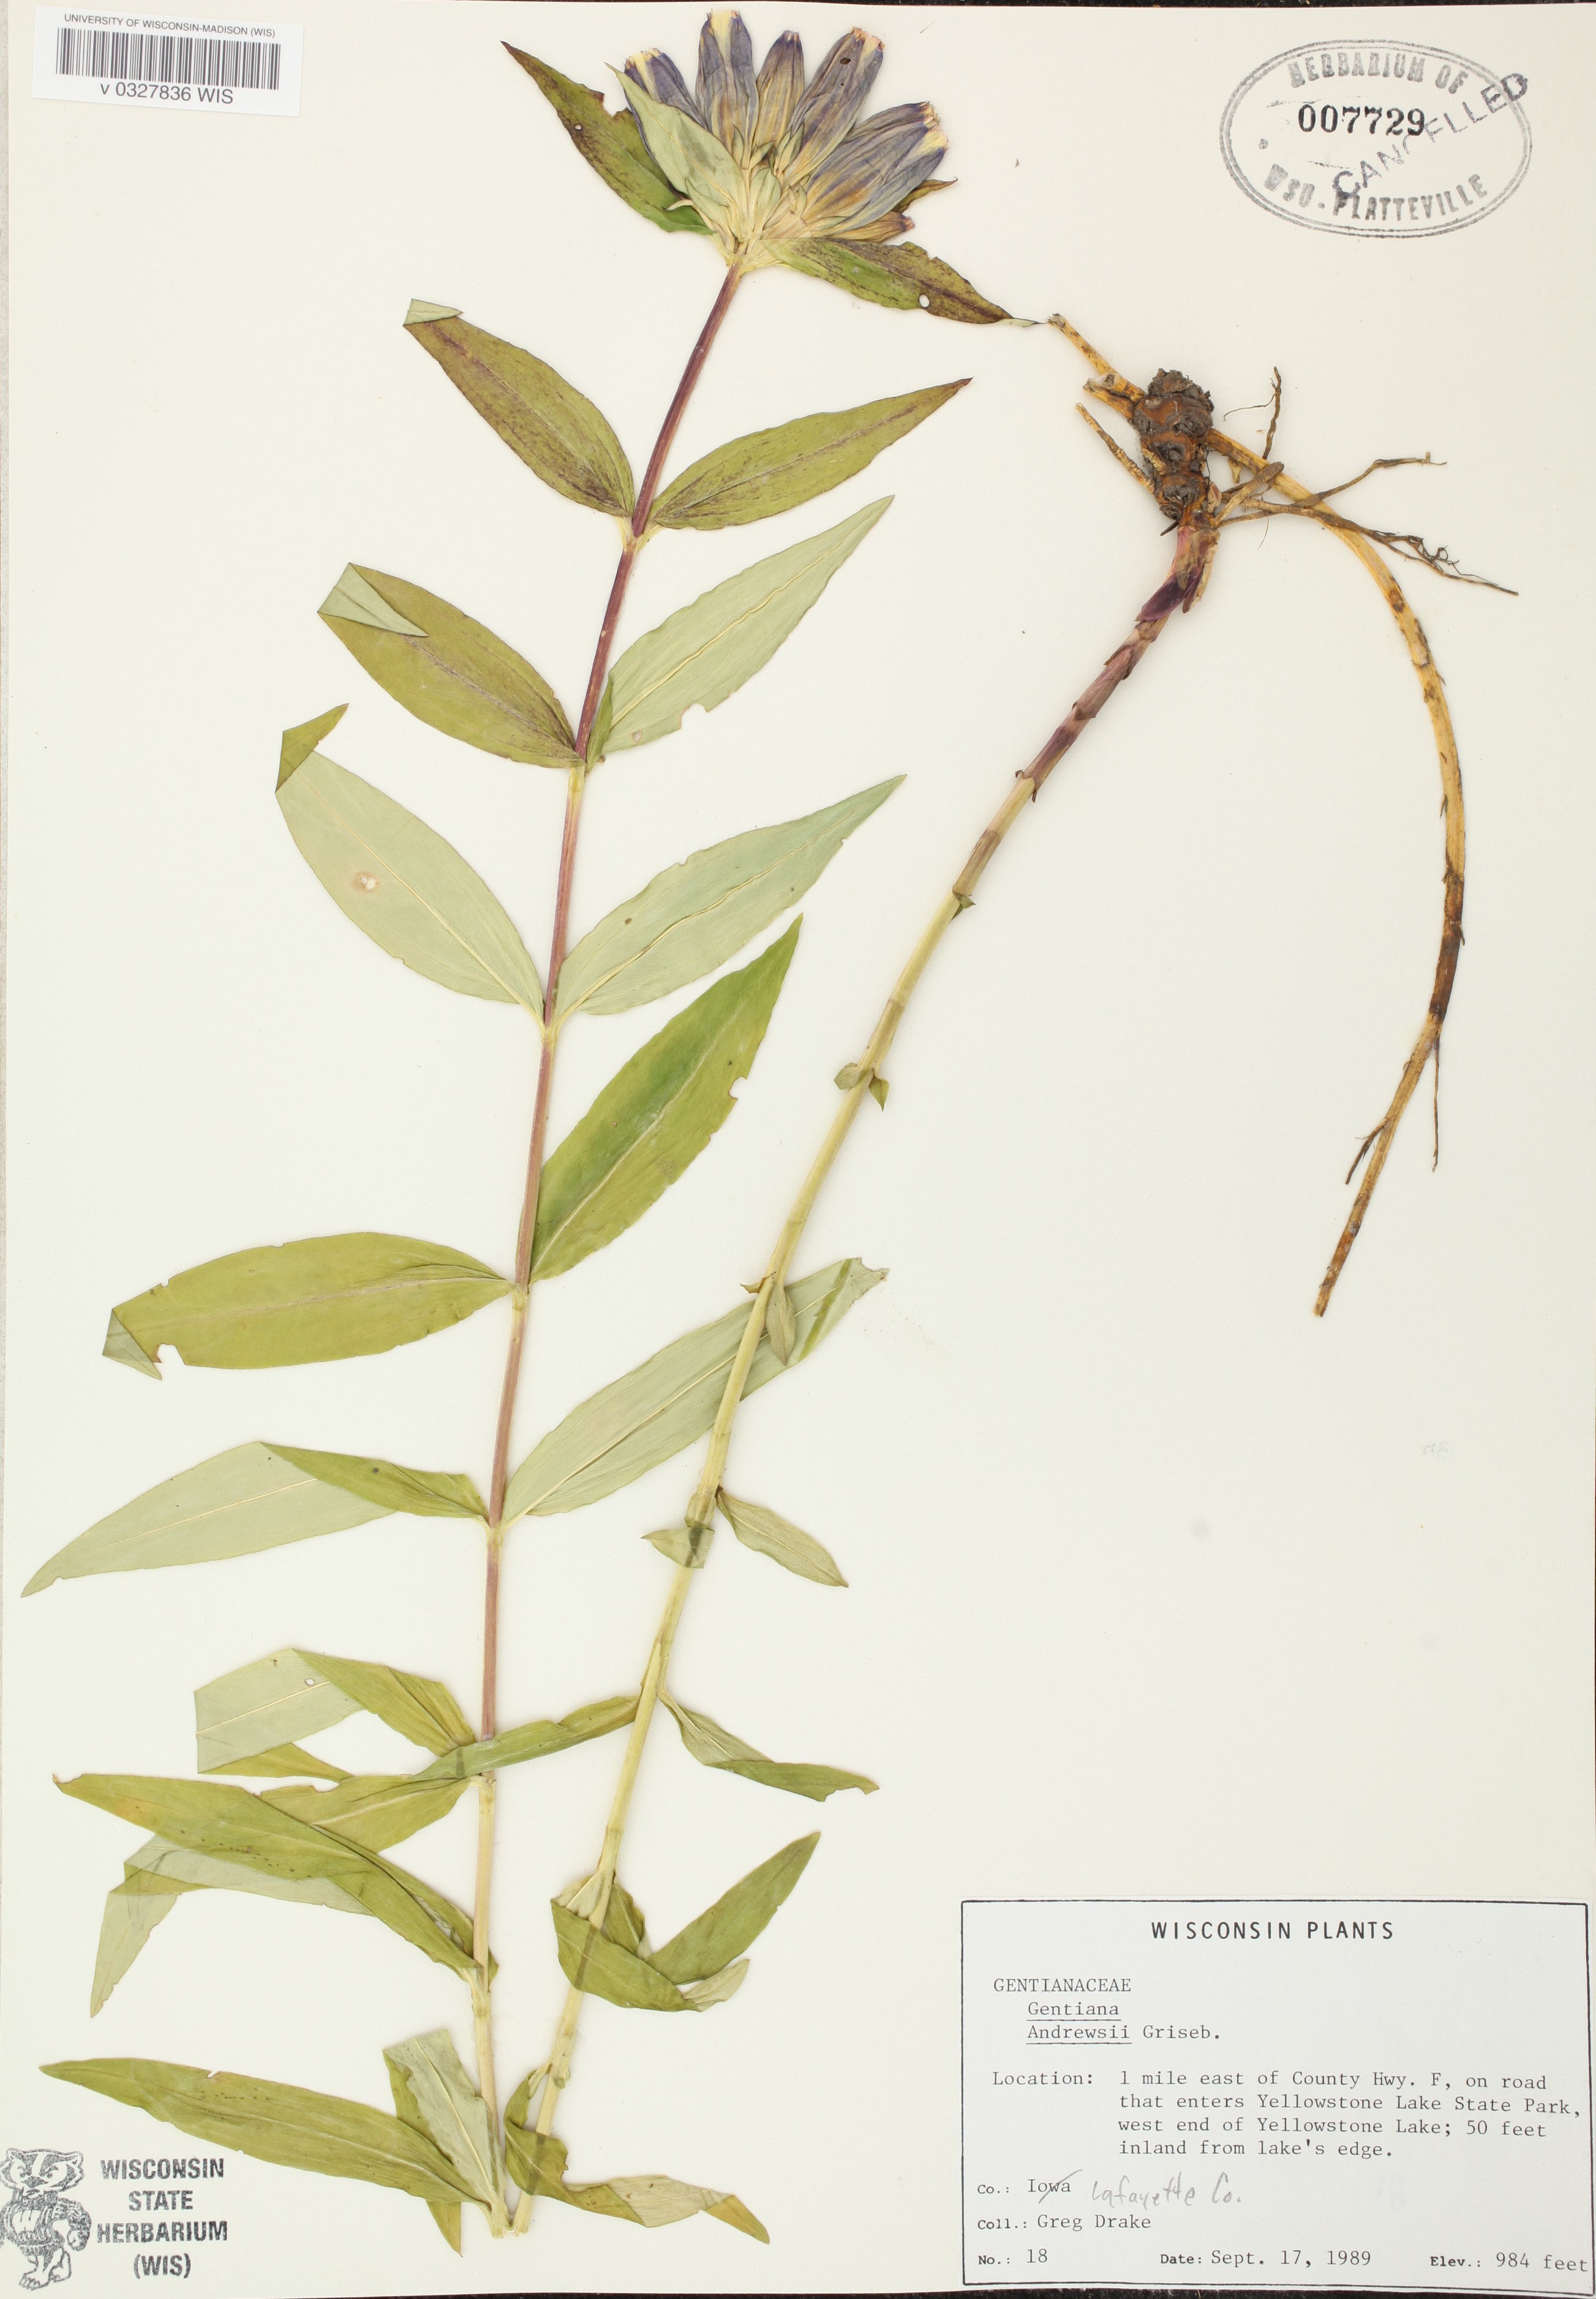 Closed Gentian specimen collected in Yellowstone Lake State Park in Lafayette County on September 17, 1989.